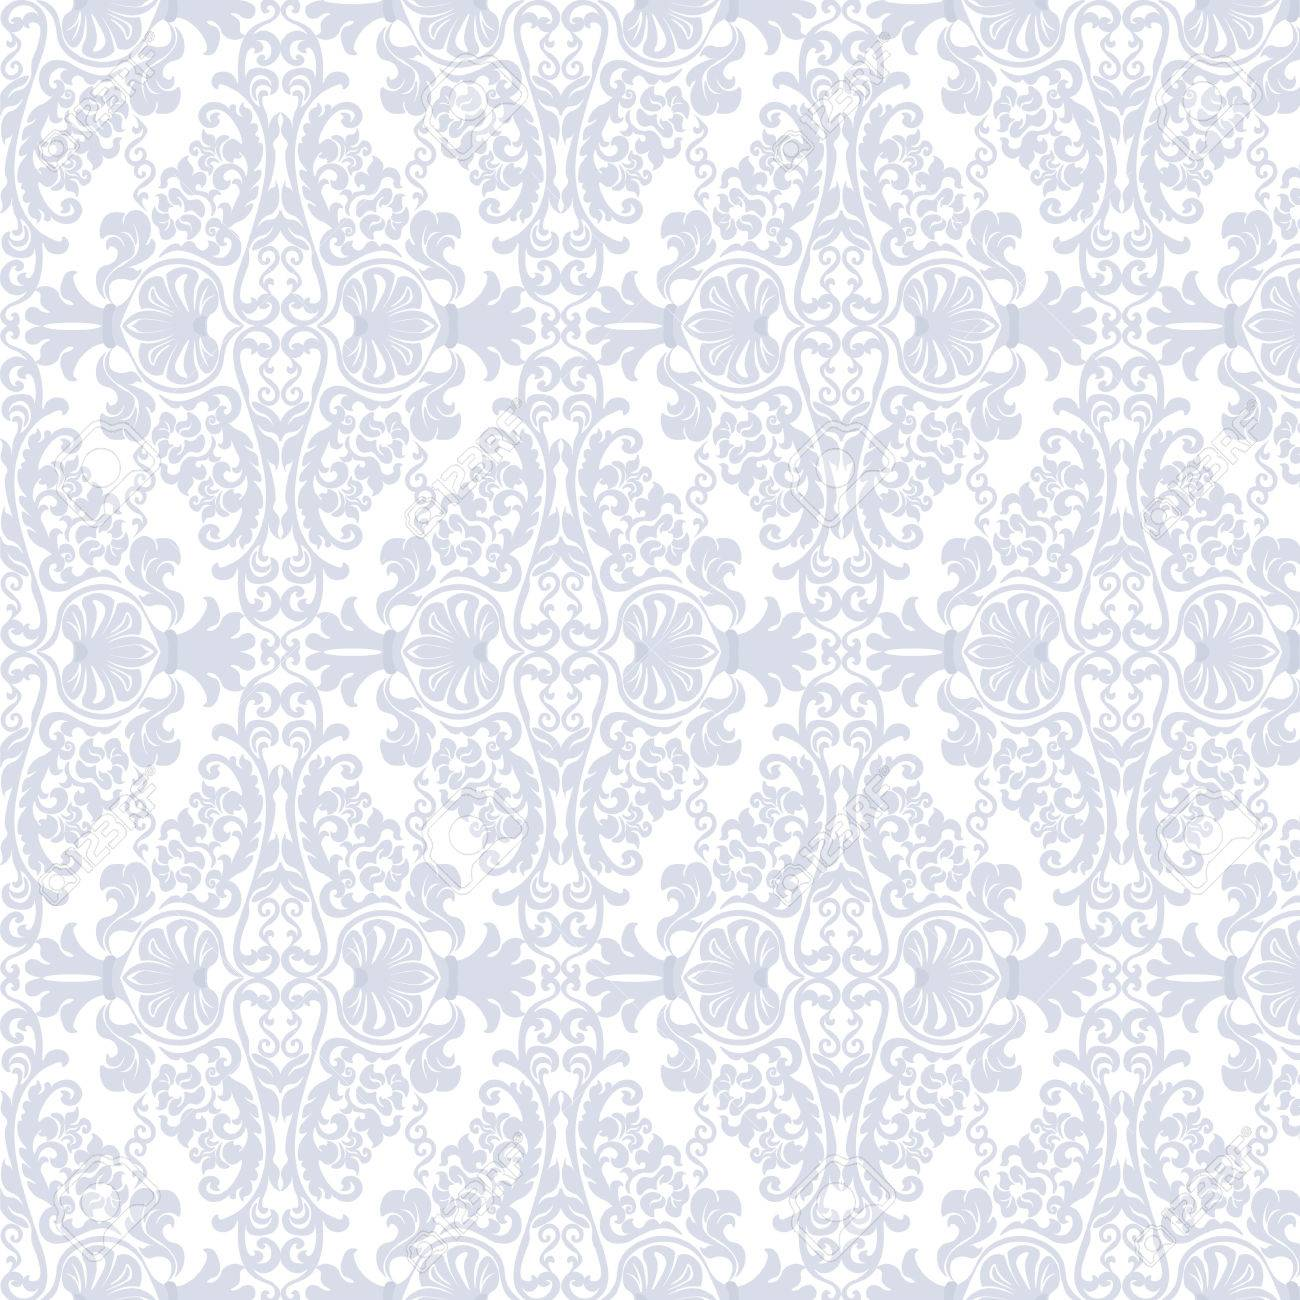 Floral Ornament Damask Pattern Elegant Luxury Texture For